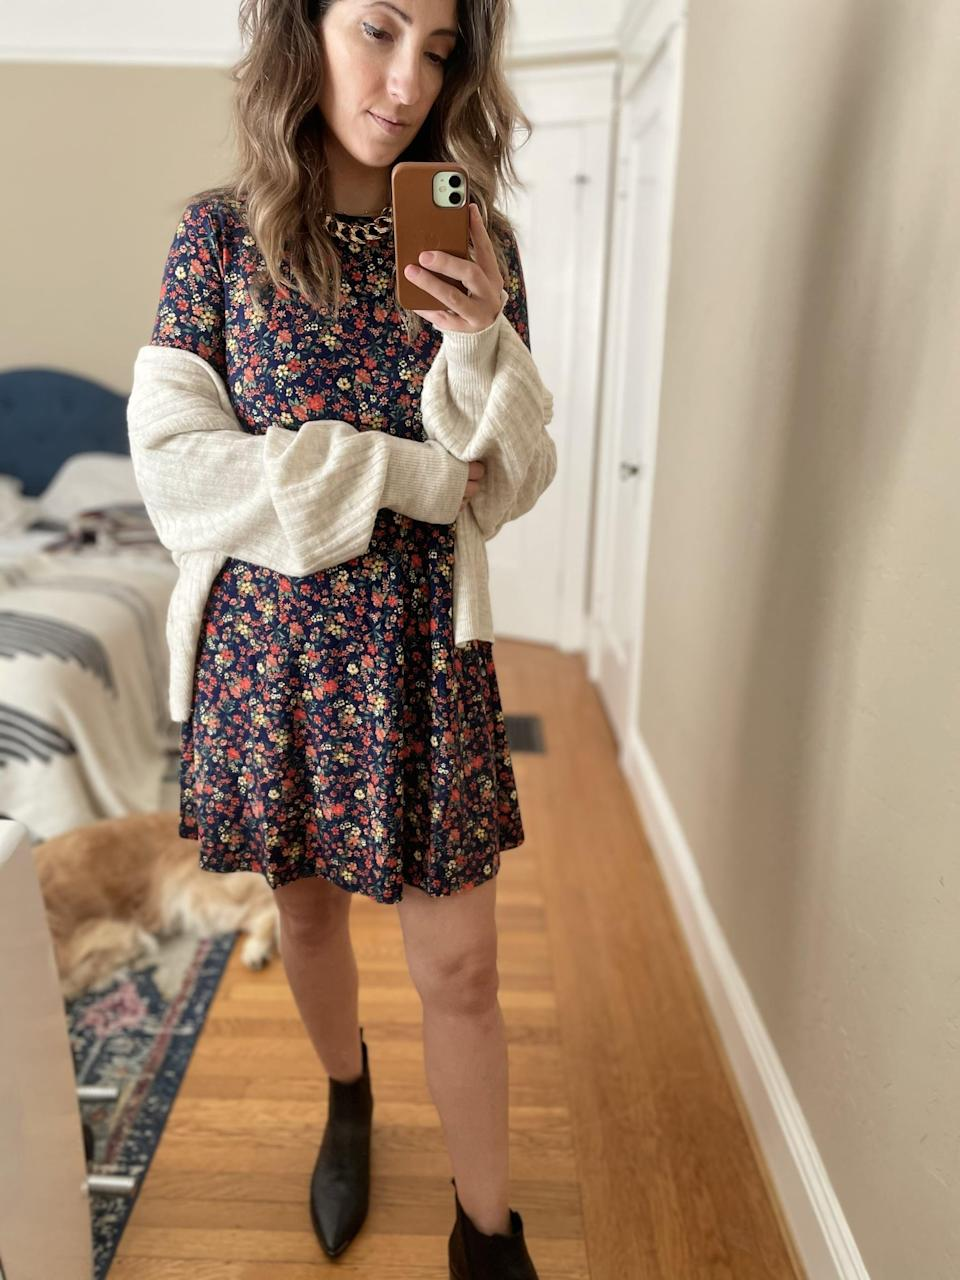 """<p><strong>The item:</strong> <span>Old Navy Floral-Print Jersey-Knit Swing Dress</span> ($12, originally $15) </p> <p><strong>What our editor said:</strong> """"It's flowy and flattering, which makes it easy to toss on. It feels more like a long-sleeved shirt than anything, and it just moves so nicely. I wore it with a cream-colored cardigan sweater and black ankle boots, but to head outside I can easily toss on leggings to make it warmer."""" - RB</p> <p>If you want to read more, here is the <a href=""""http://www.popsugar.com/fashion/long-sleeve-floral-dress-at-old-navy-editor-review-48056334"""" class=""""link rapid-noclick-resp"""" rel=""""nofollow noopener"""" target=""""_blank"""" data-ylk=""""slk:complete review"""">complete review</a>.</p>"""